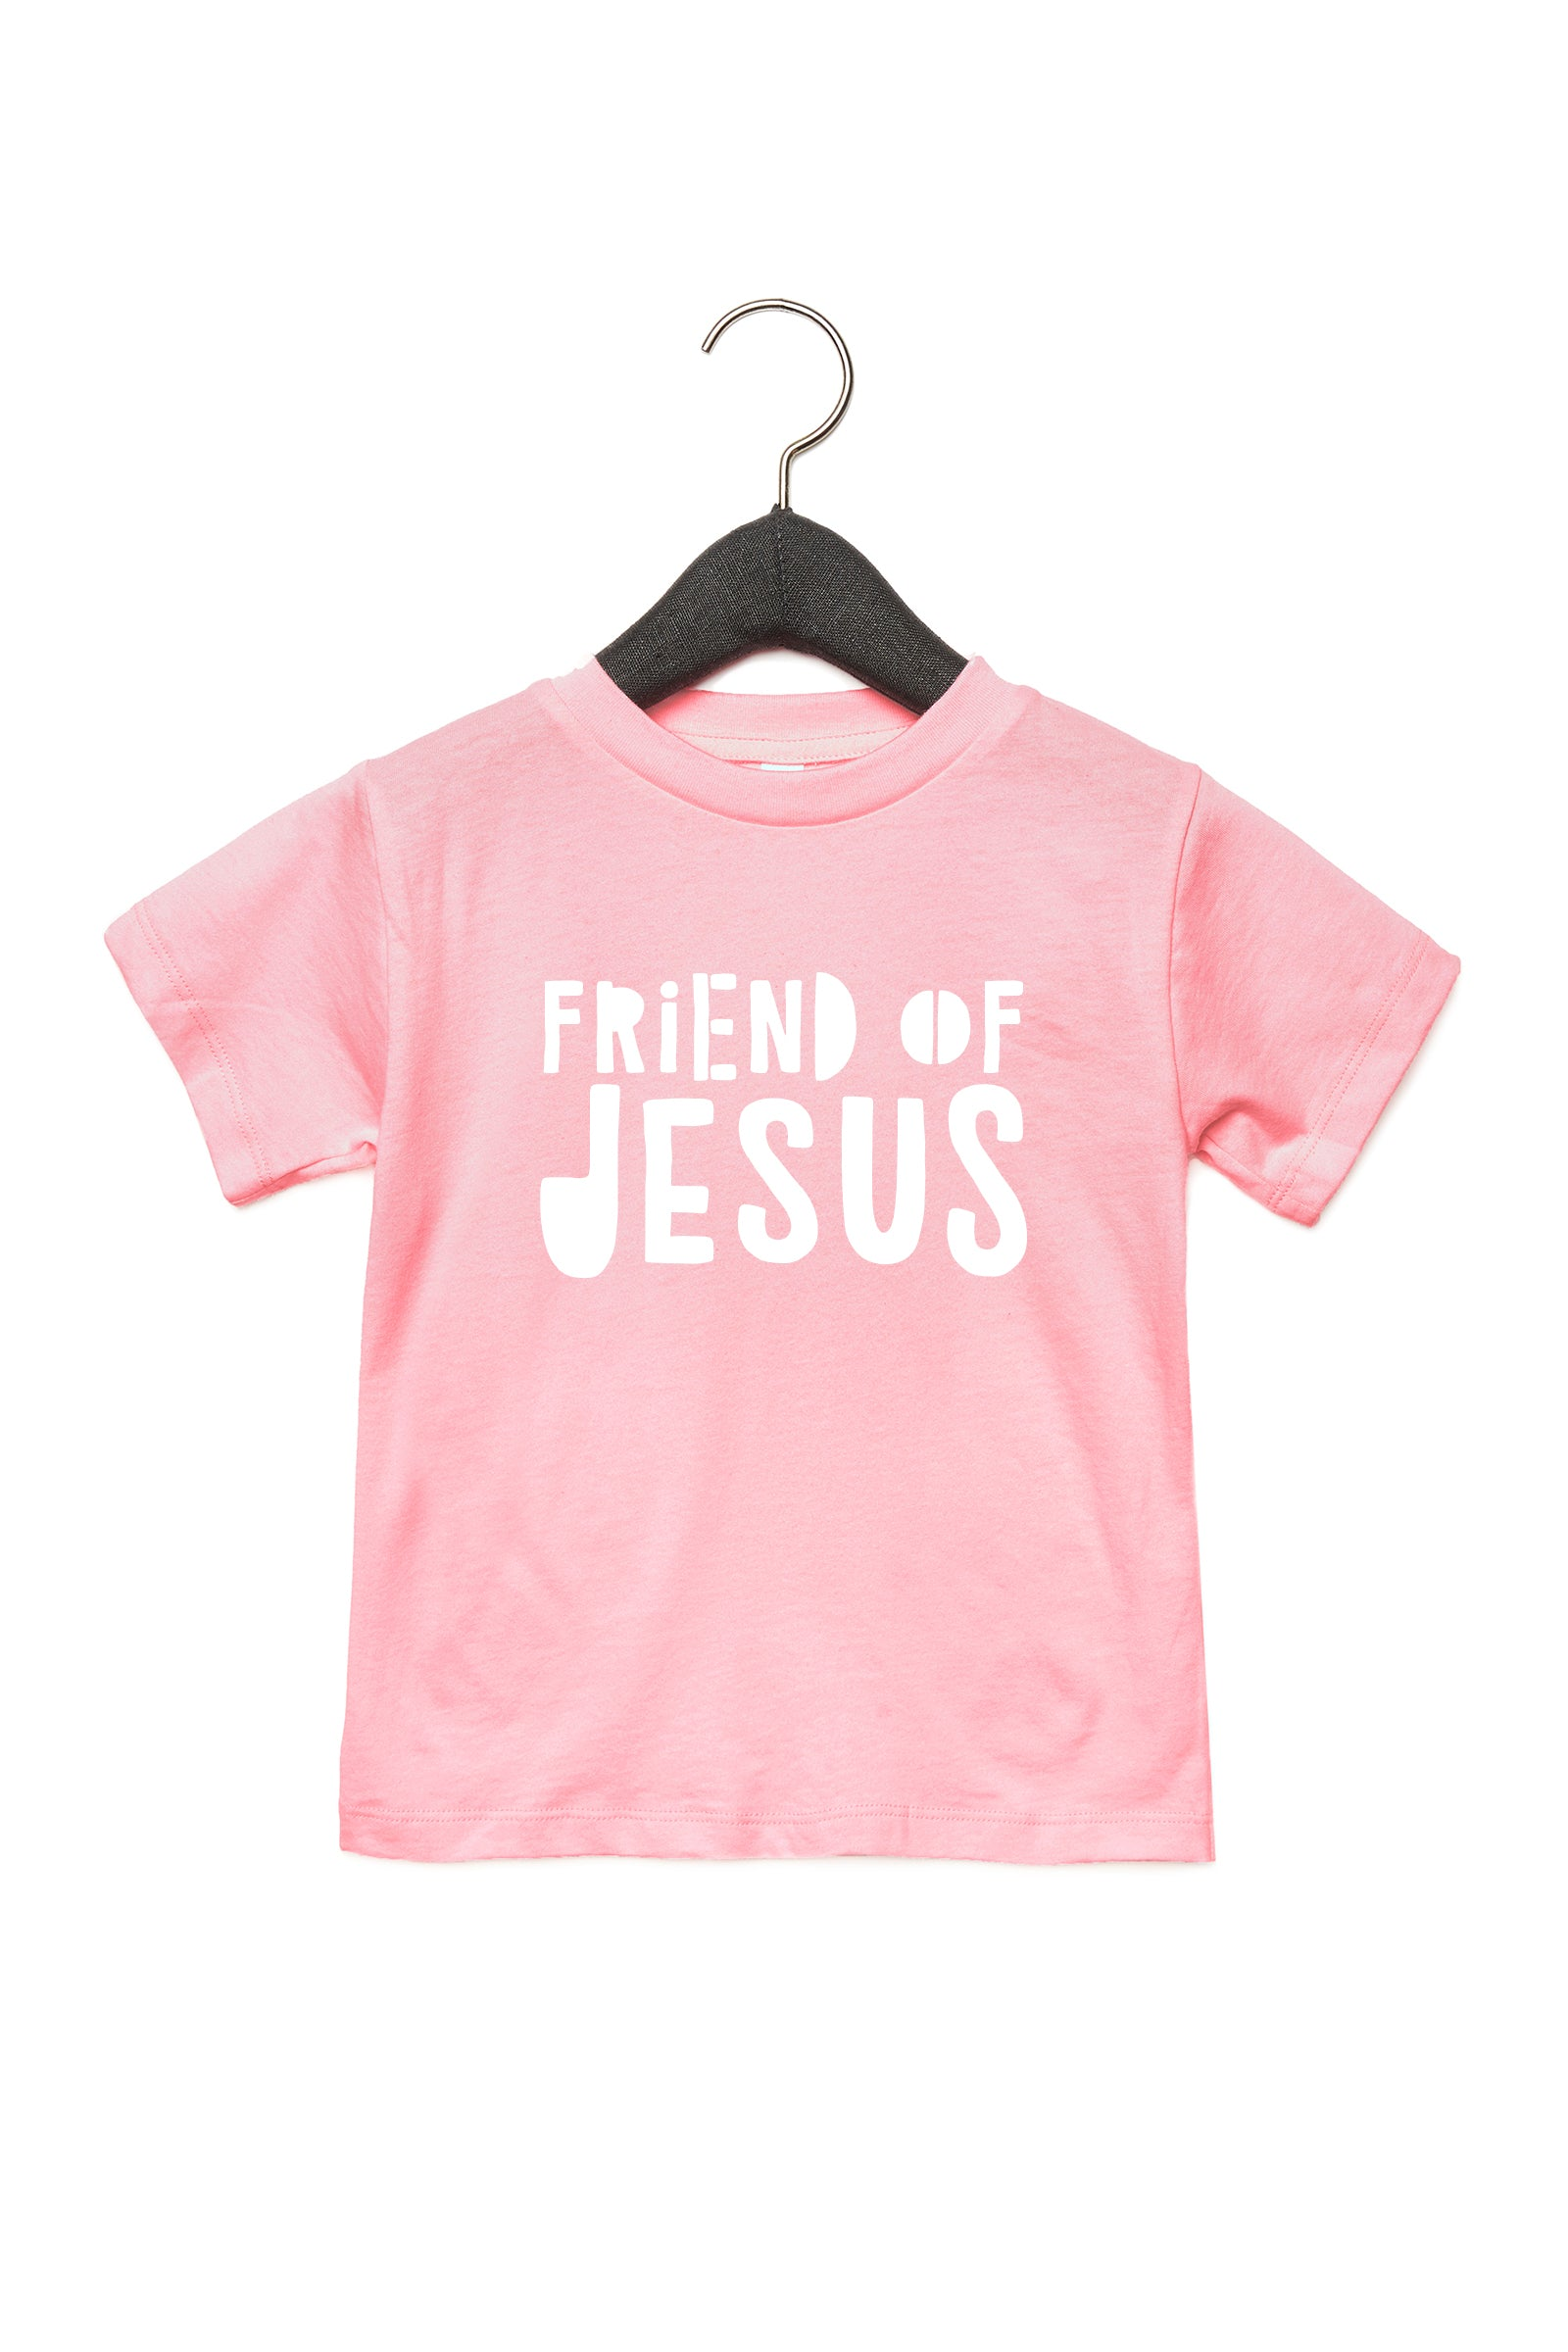 (PRE-ORDER) Friend of Jesus™️ Toddler T-Shirt | Pink